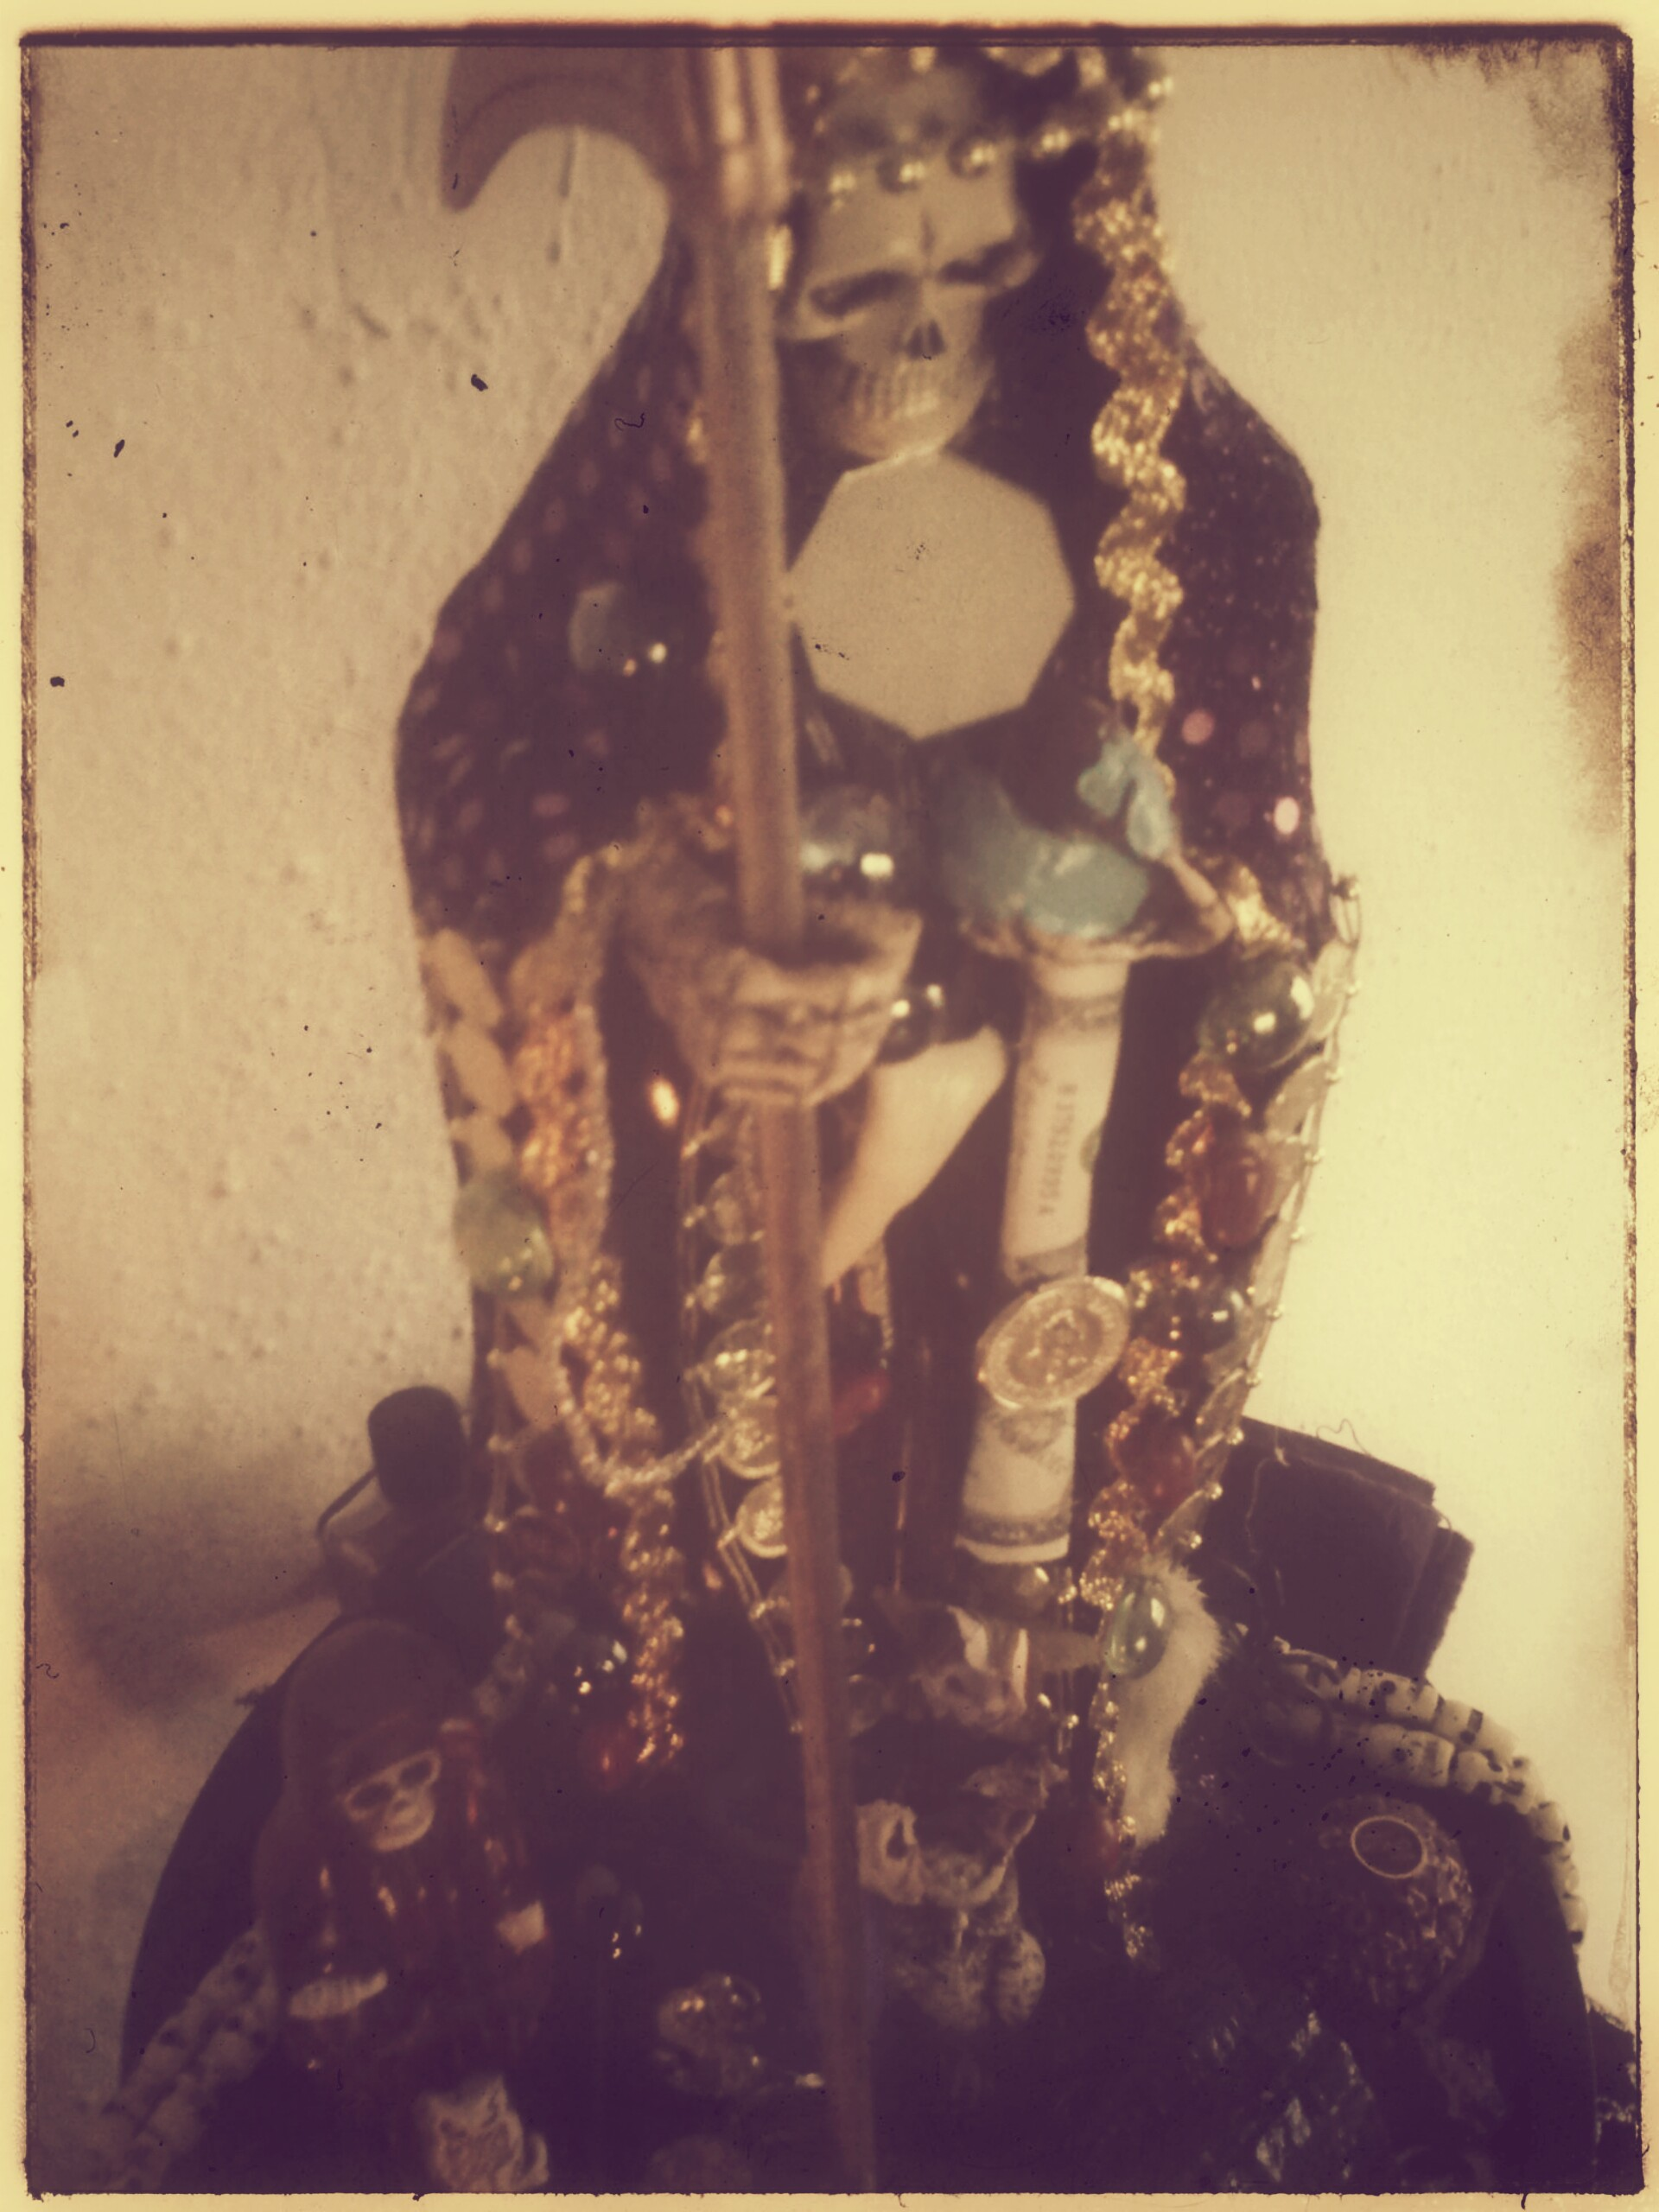 f32e45e037277 Santa muerte veneration night house of magical illimuniation jpg 1920x2560 Santa  muerte tumblr